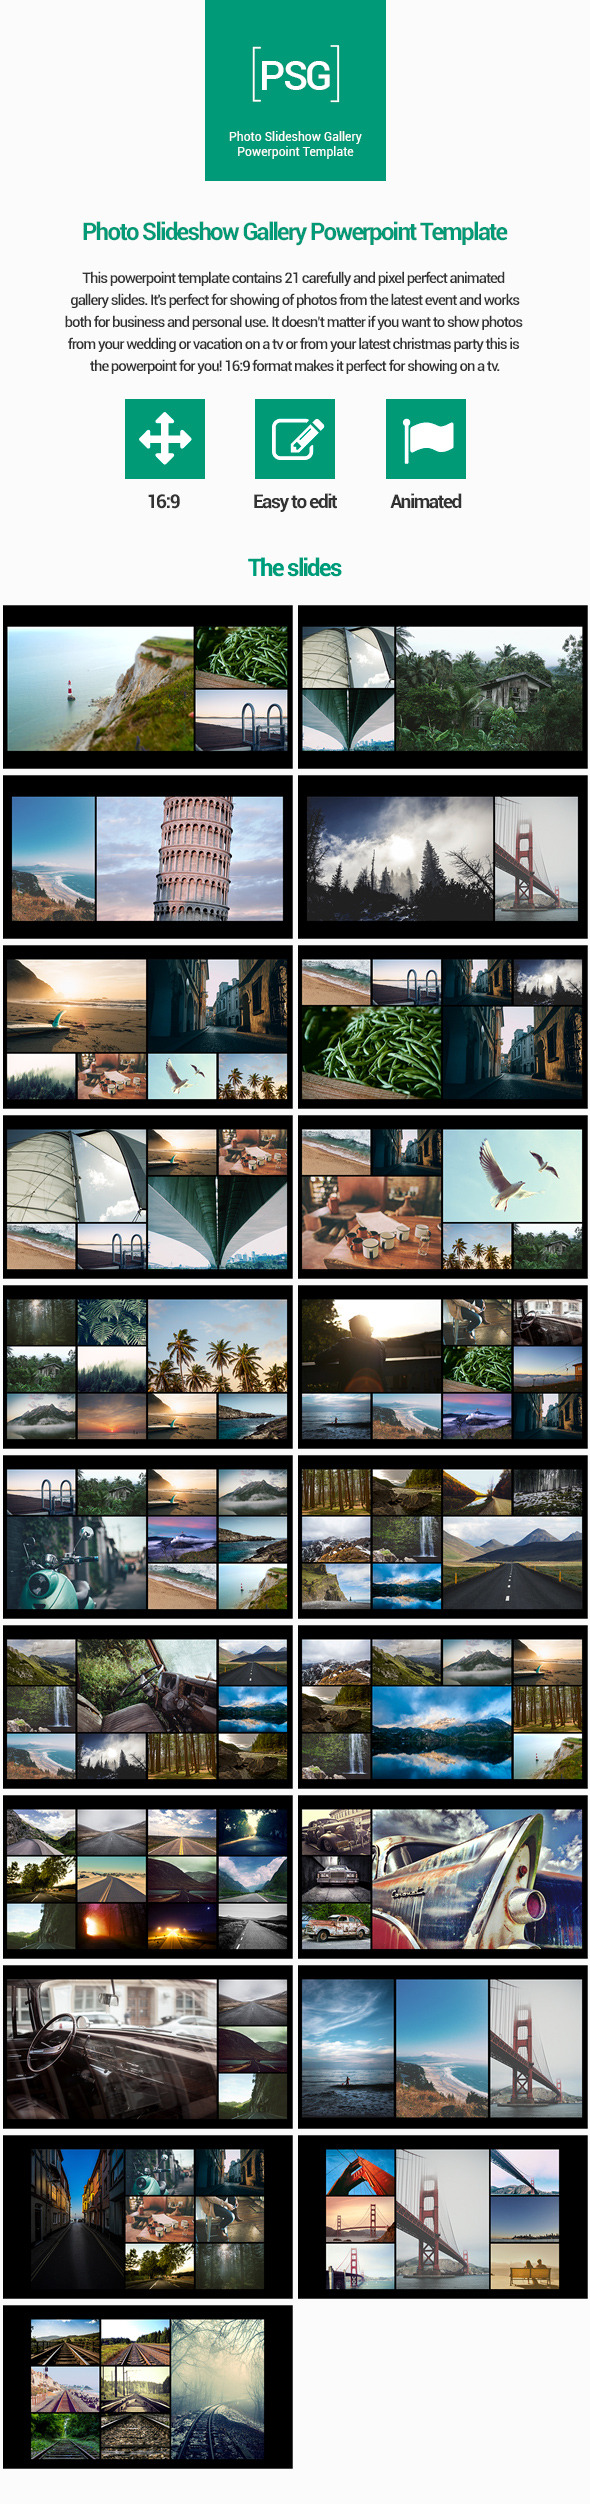 Photo Slideshow Gallery Powerpoint Template - Creative PowerPoint Templates